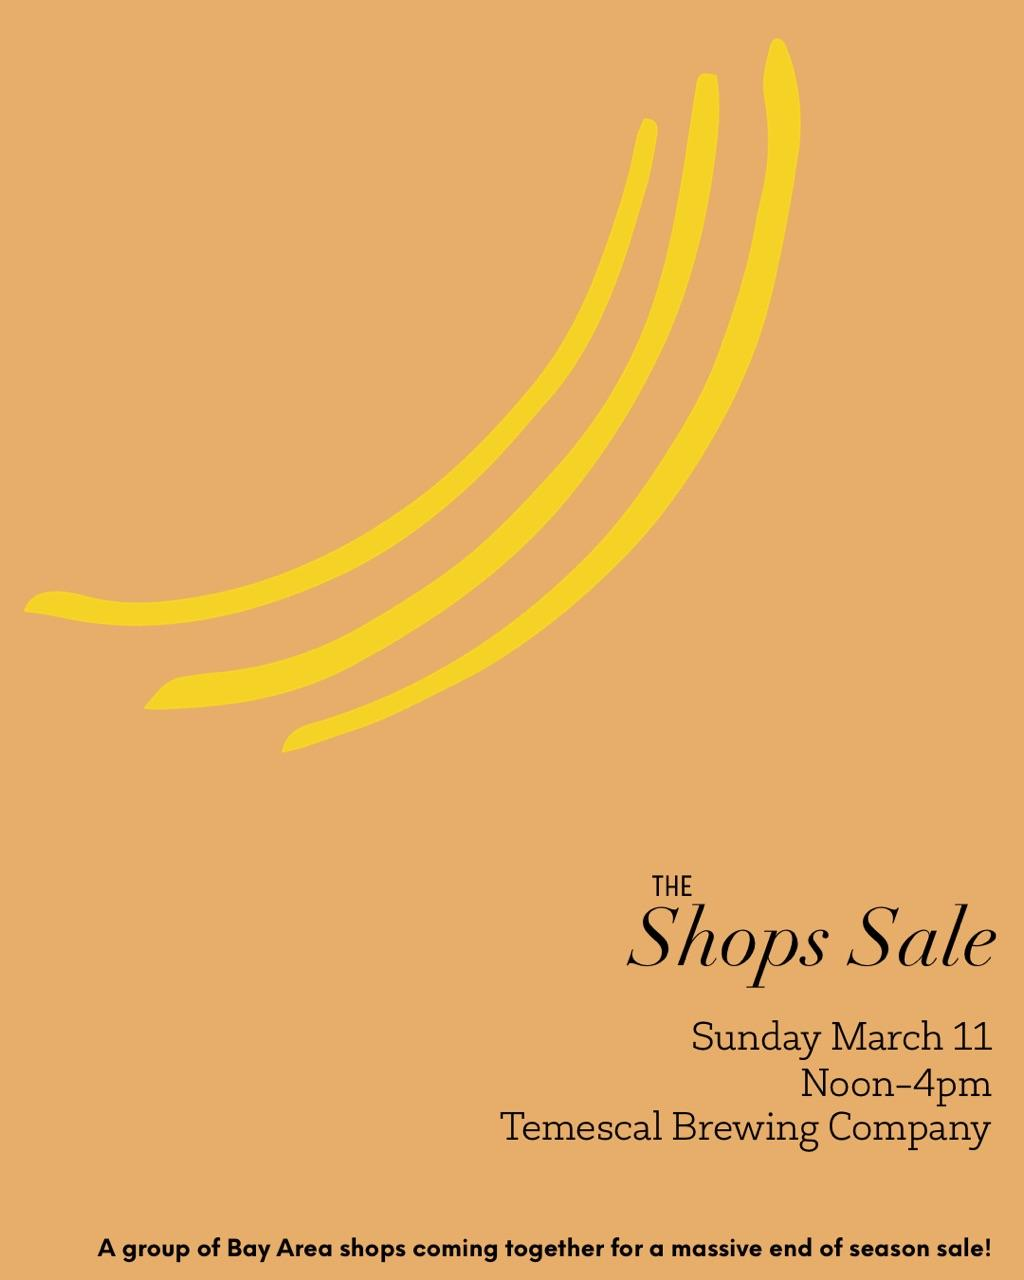 Workshops Events Gather How To Update Your Outlets Step By Pics Young House Love The Shops Sale Is Back Join Us Sunday March 11th From Noon 4p At Temescal Brewing Company In Oakland As We Pop Up With A Group Of Other Locally Owned